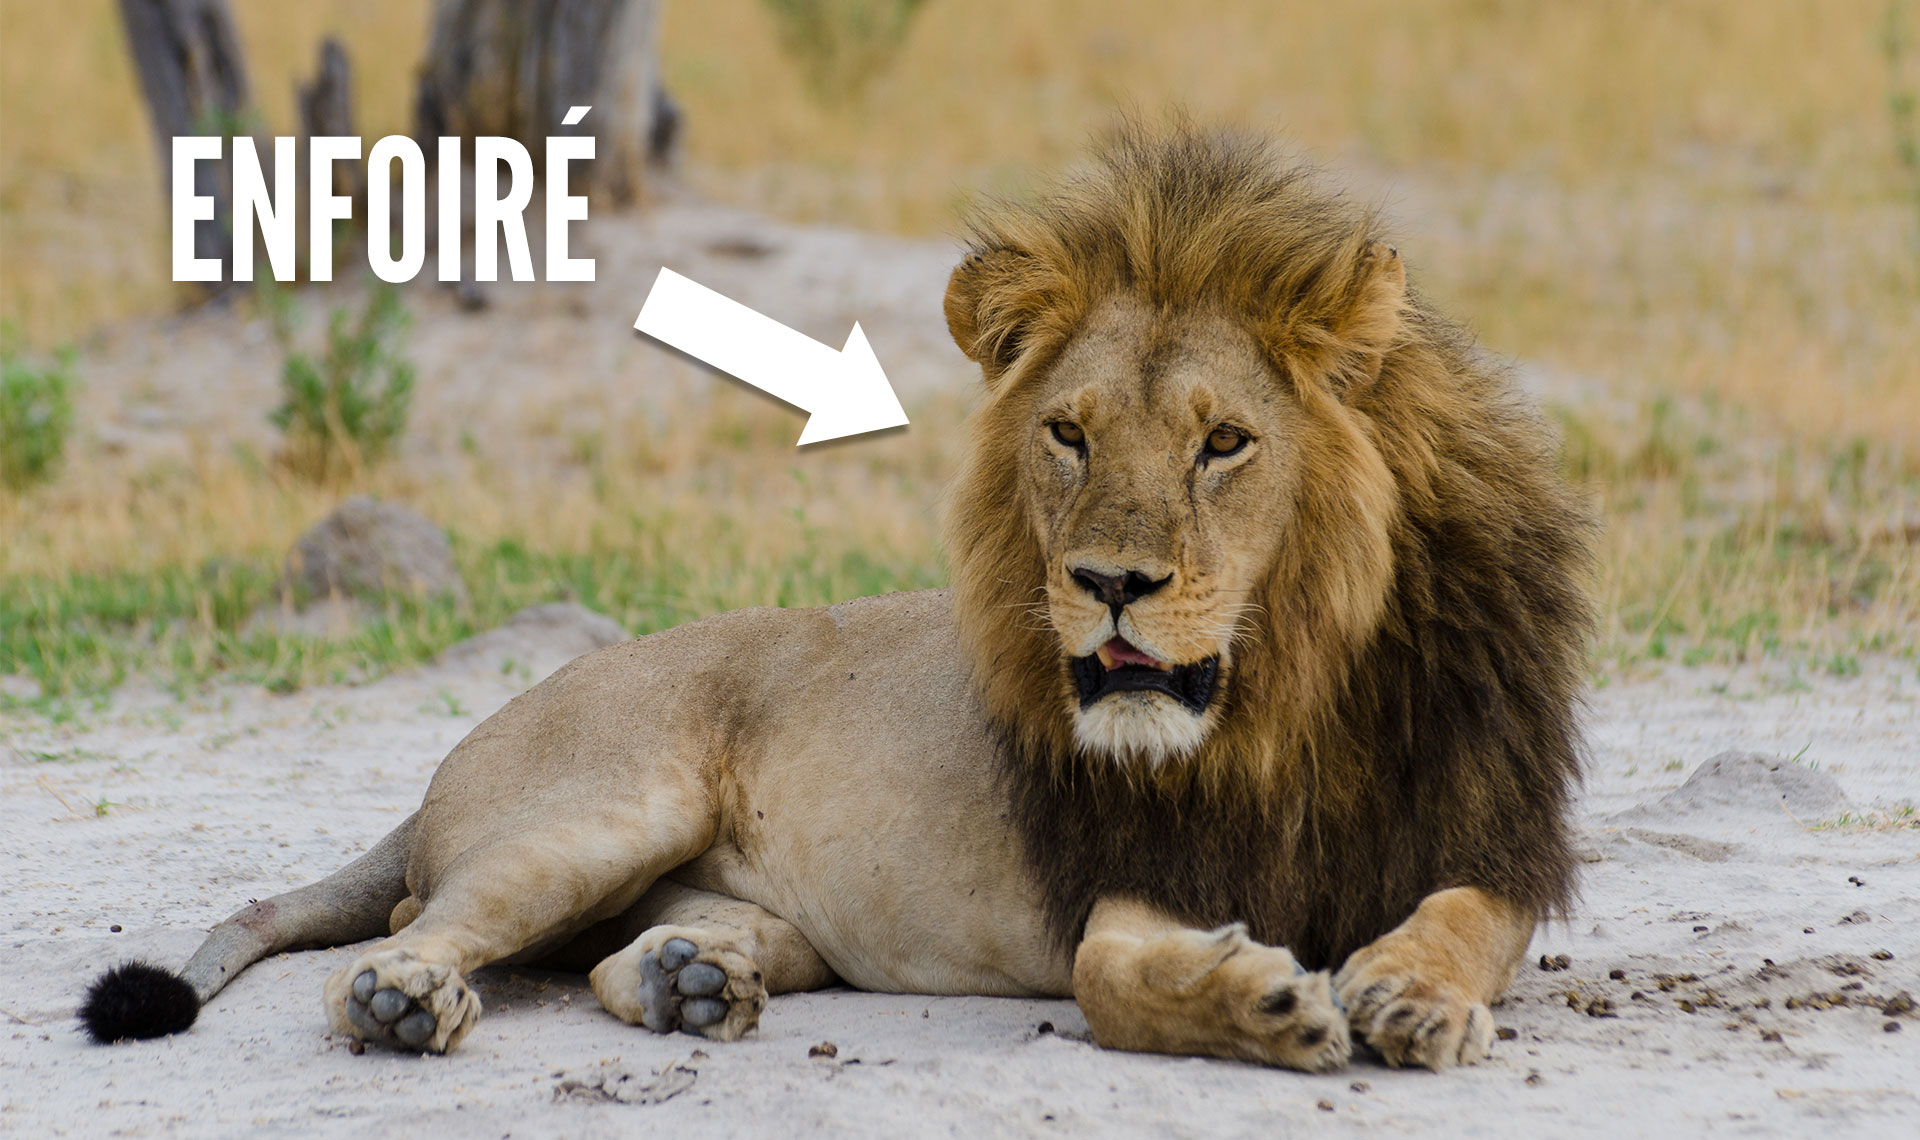 Top 12 excellentes raisons de buter tous les Lions finissons le boulot  Topito